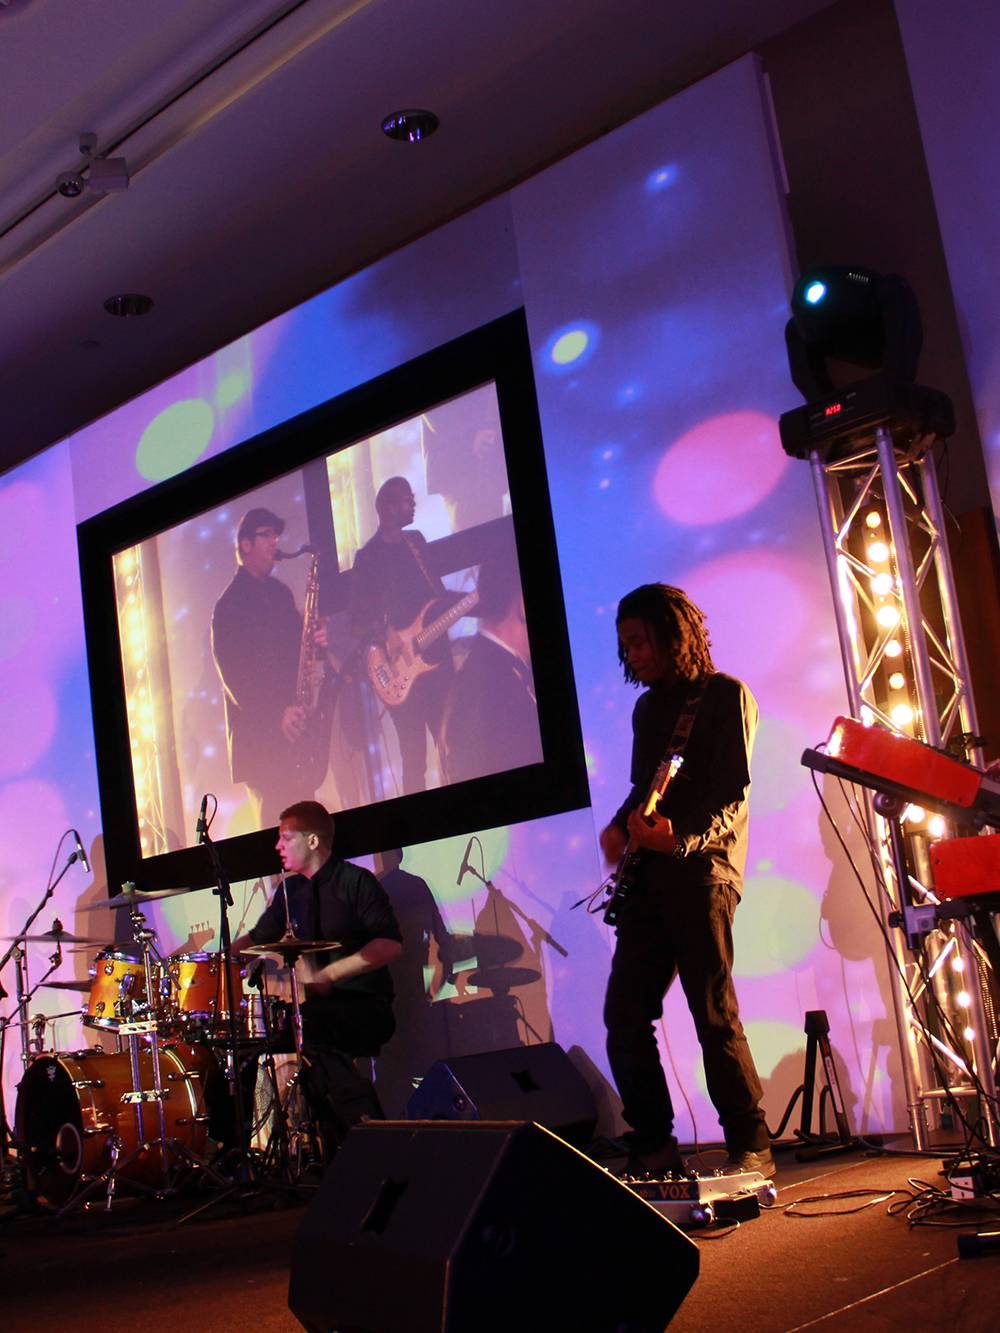 Projection Mapped Stage Set for a Gala Dinner at Hilton Liverpool